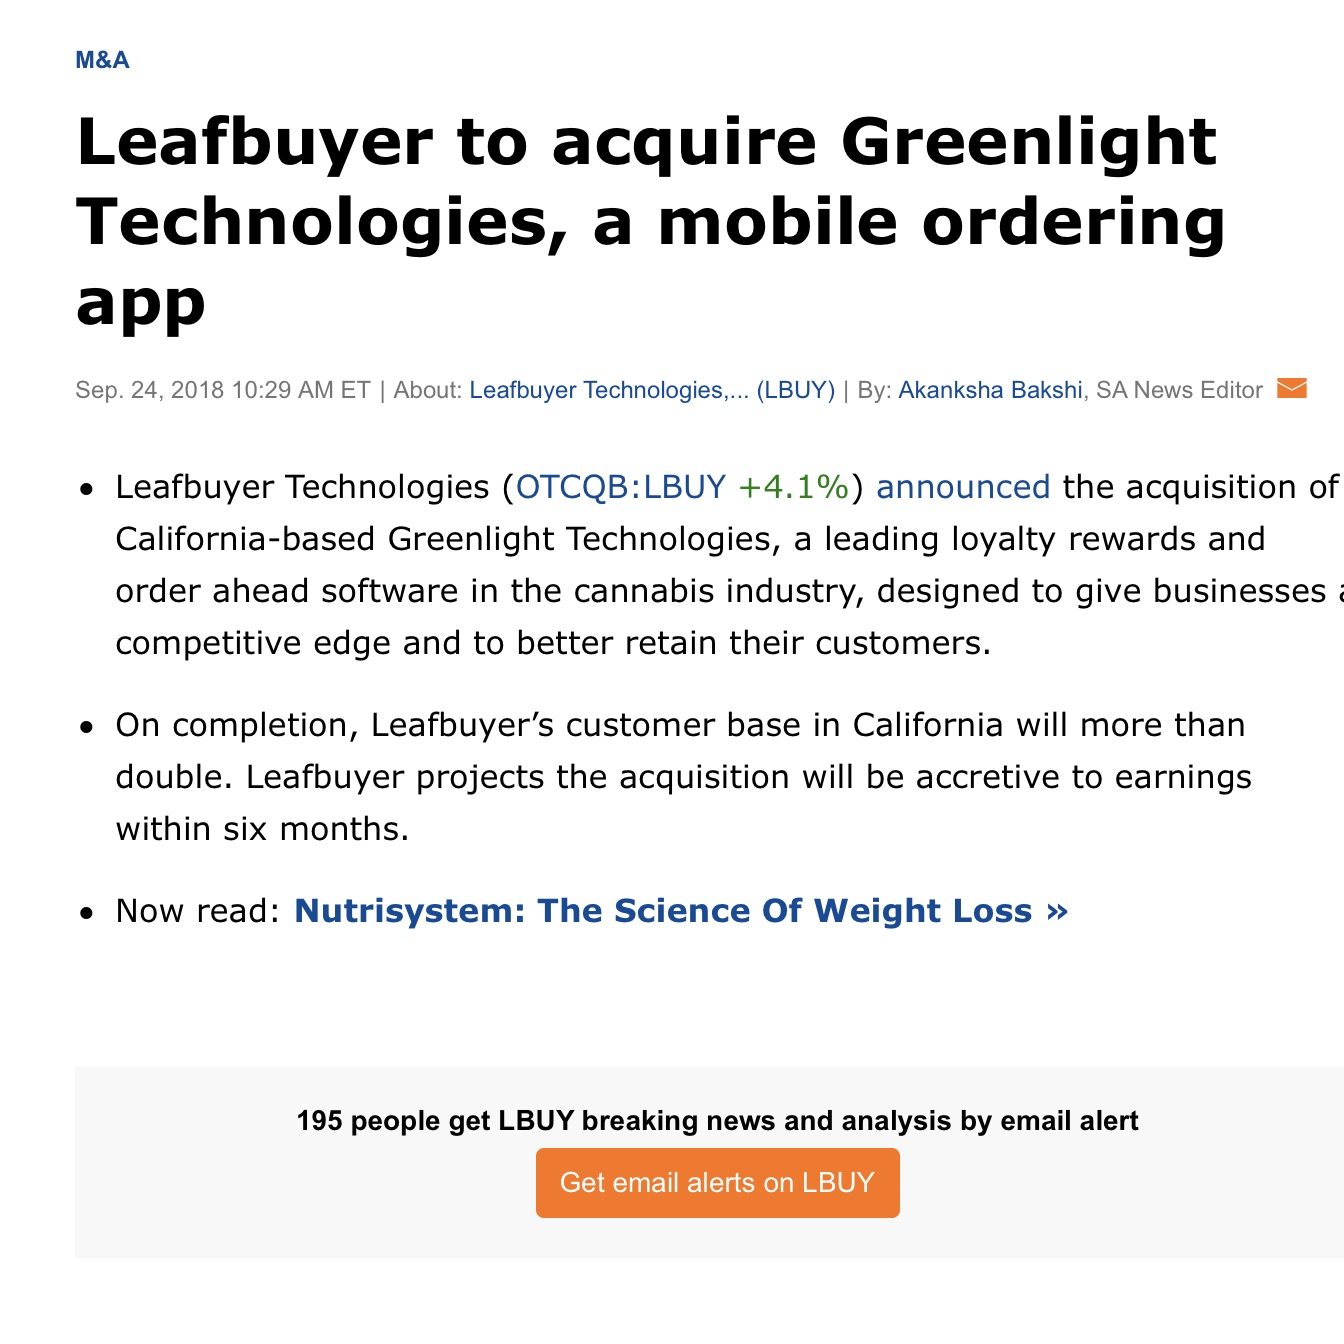 Leafbuyer to acquire Greenlight Technologies, a mobile ordering app -